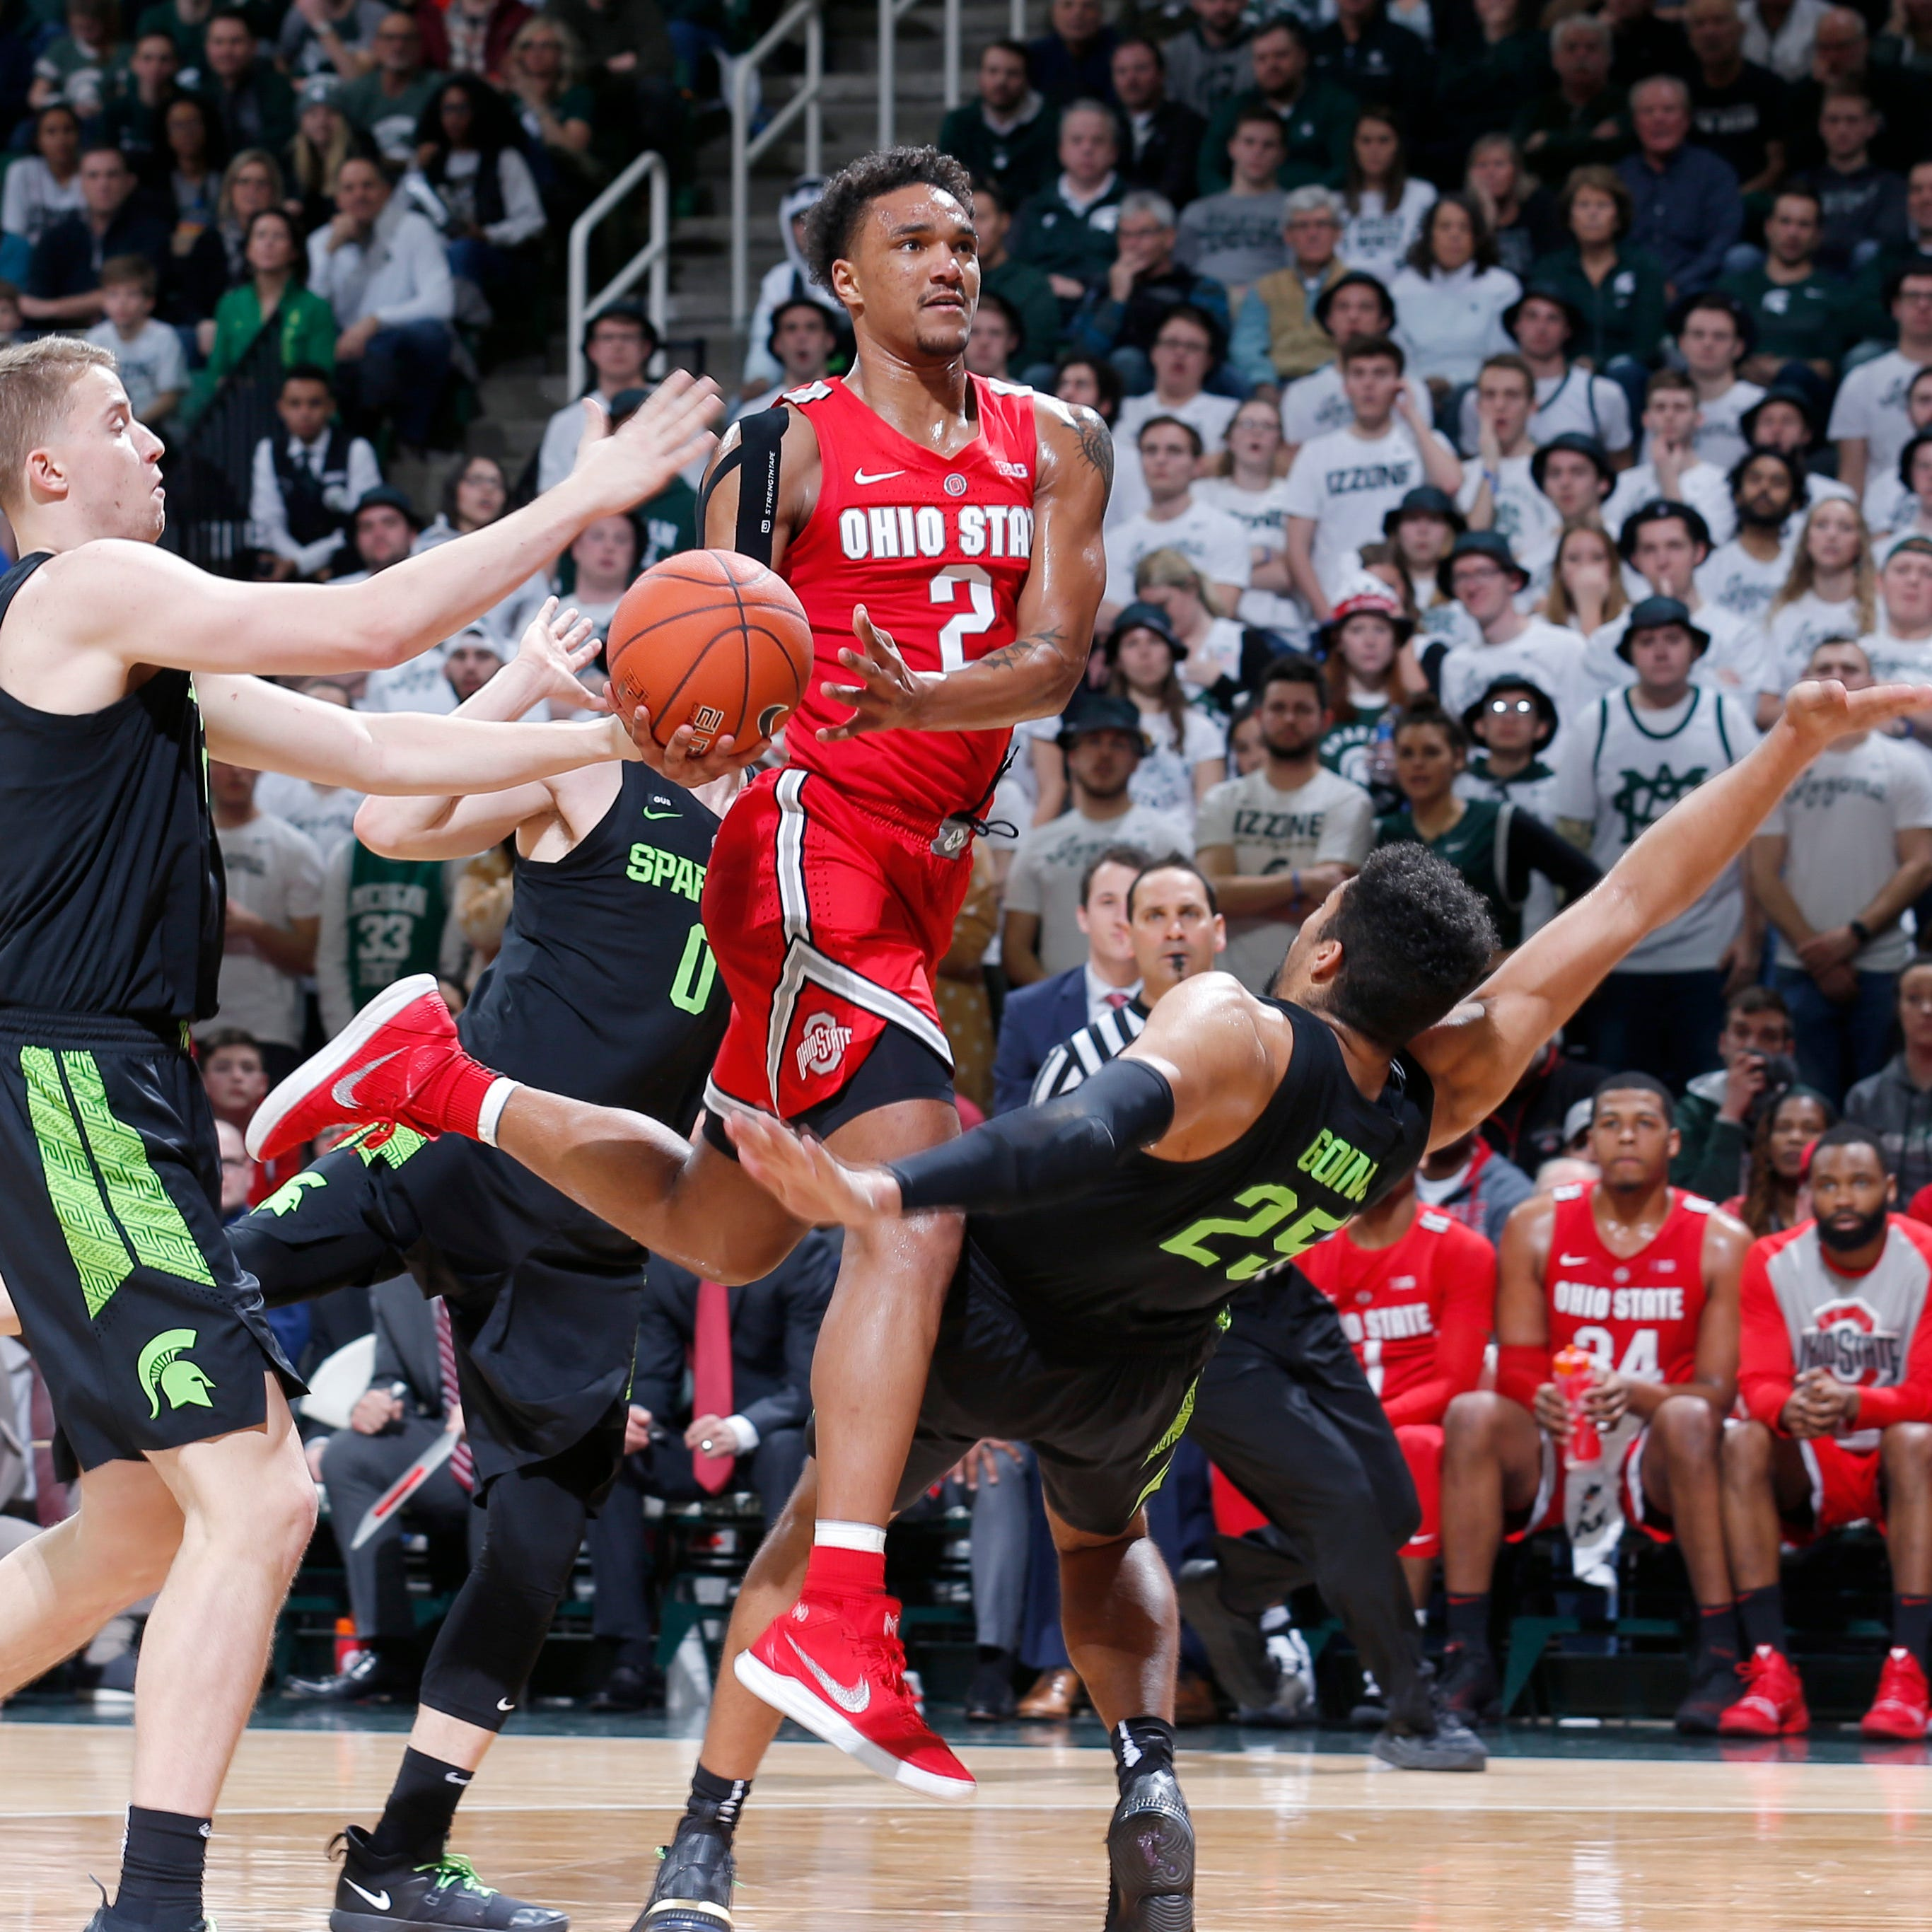 Couch: 3 quick takes on Michigan State basketball's strange win over Ohio State